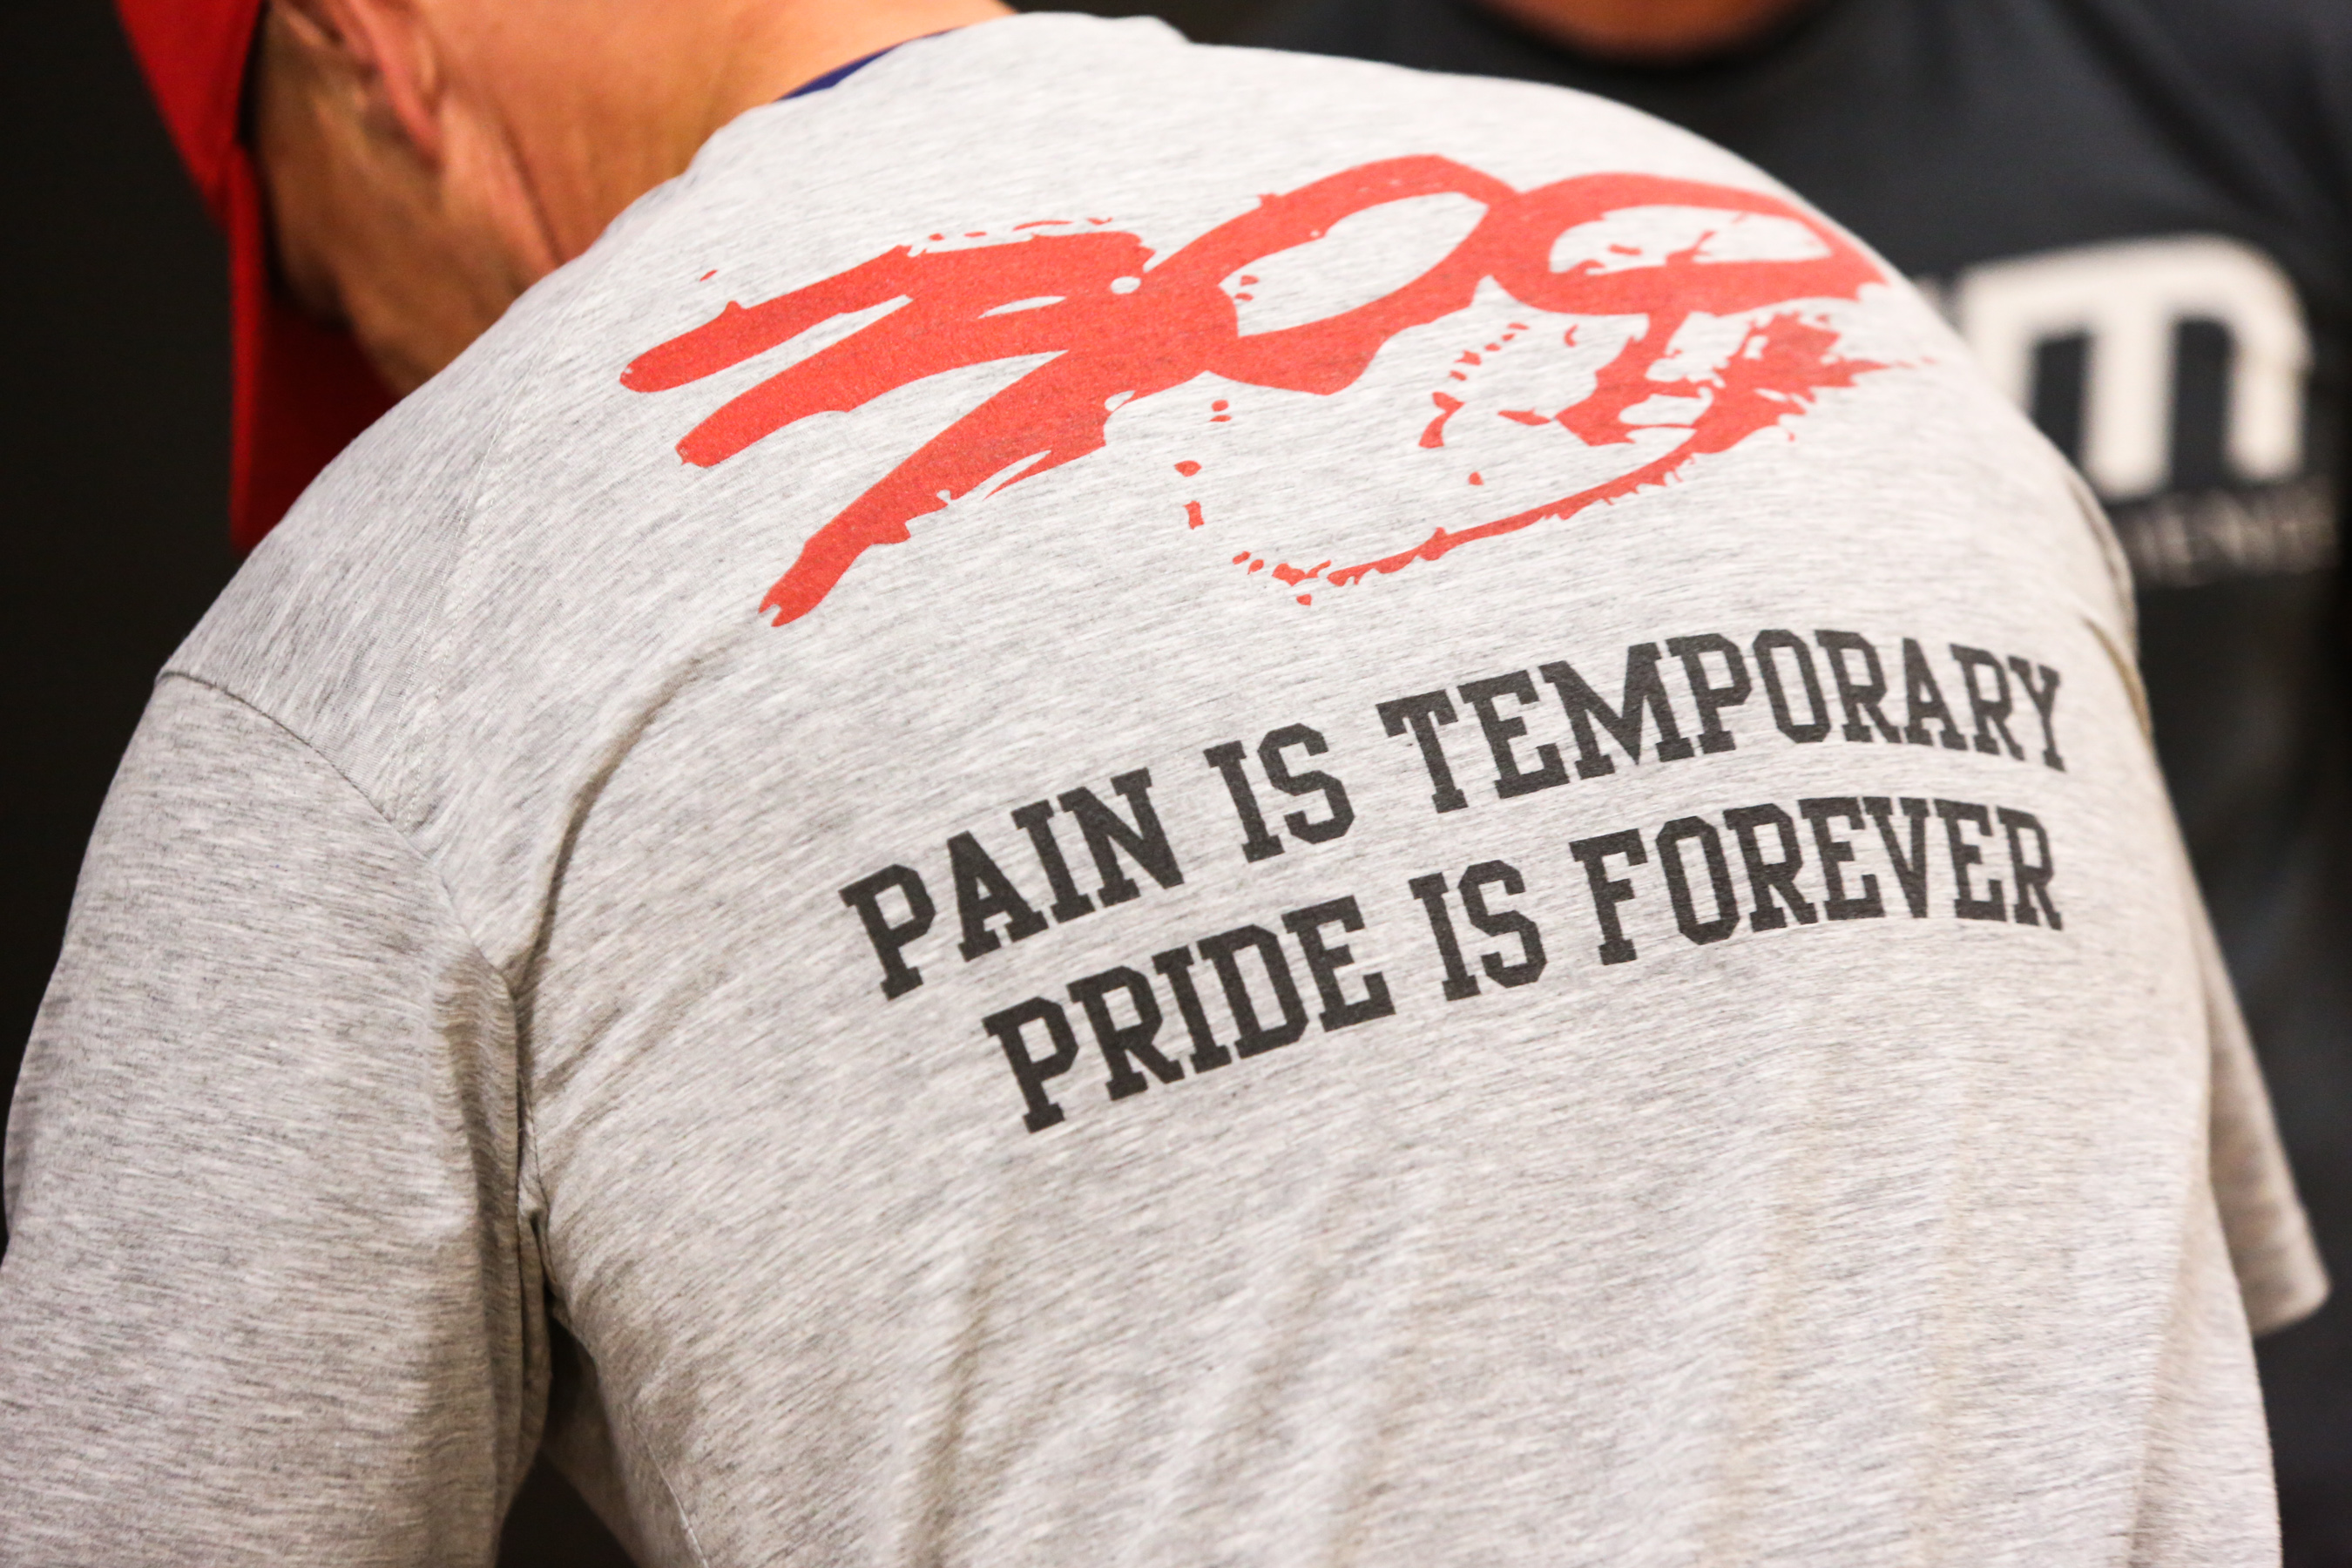 back of shirt that says 'Pain is Temporary, Pride is Forever'